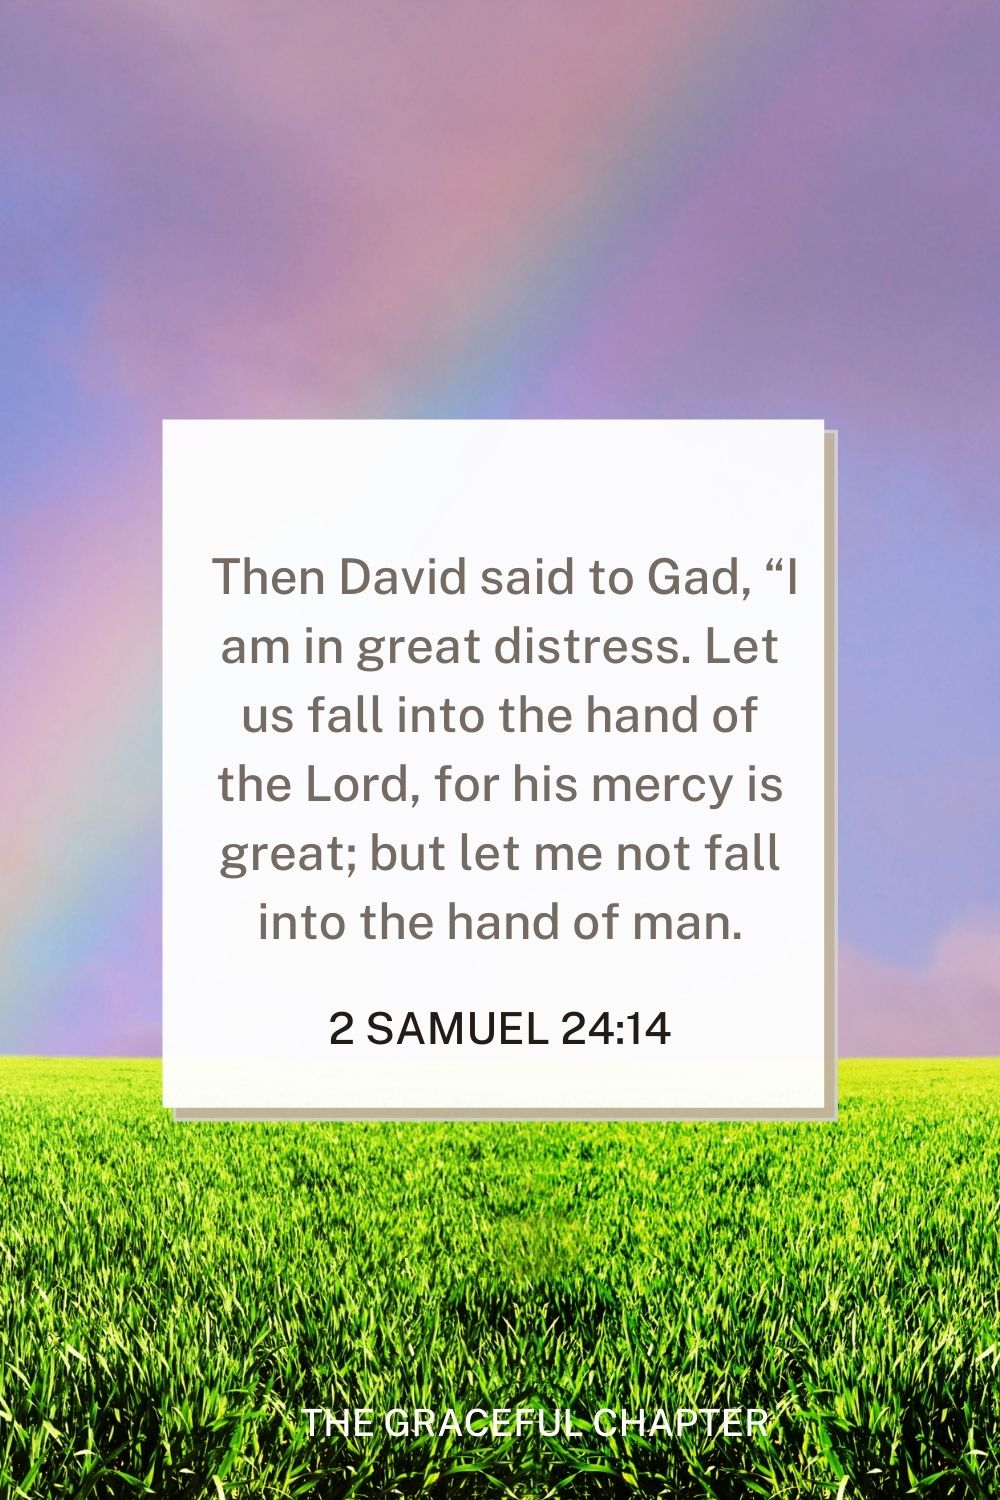 """Then David said to Gad, """"I am in great distress. Let us fall into the hand of the Lord, for his mercy is great; but let me not fall into the hand of man."""" 2 Samuel 24:14"""